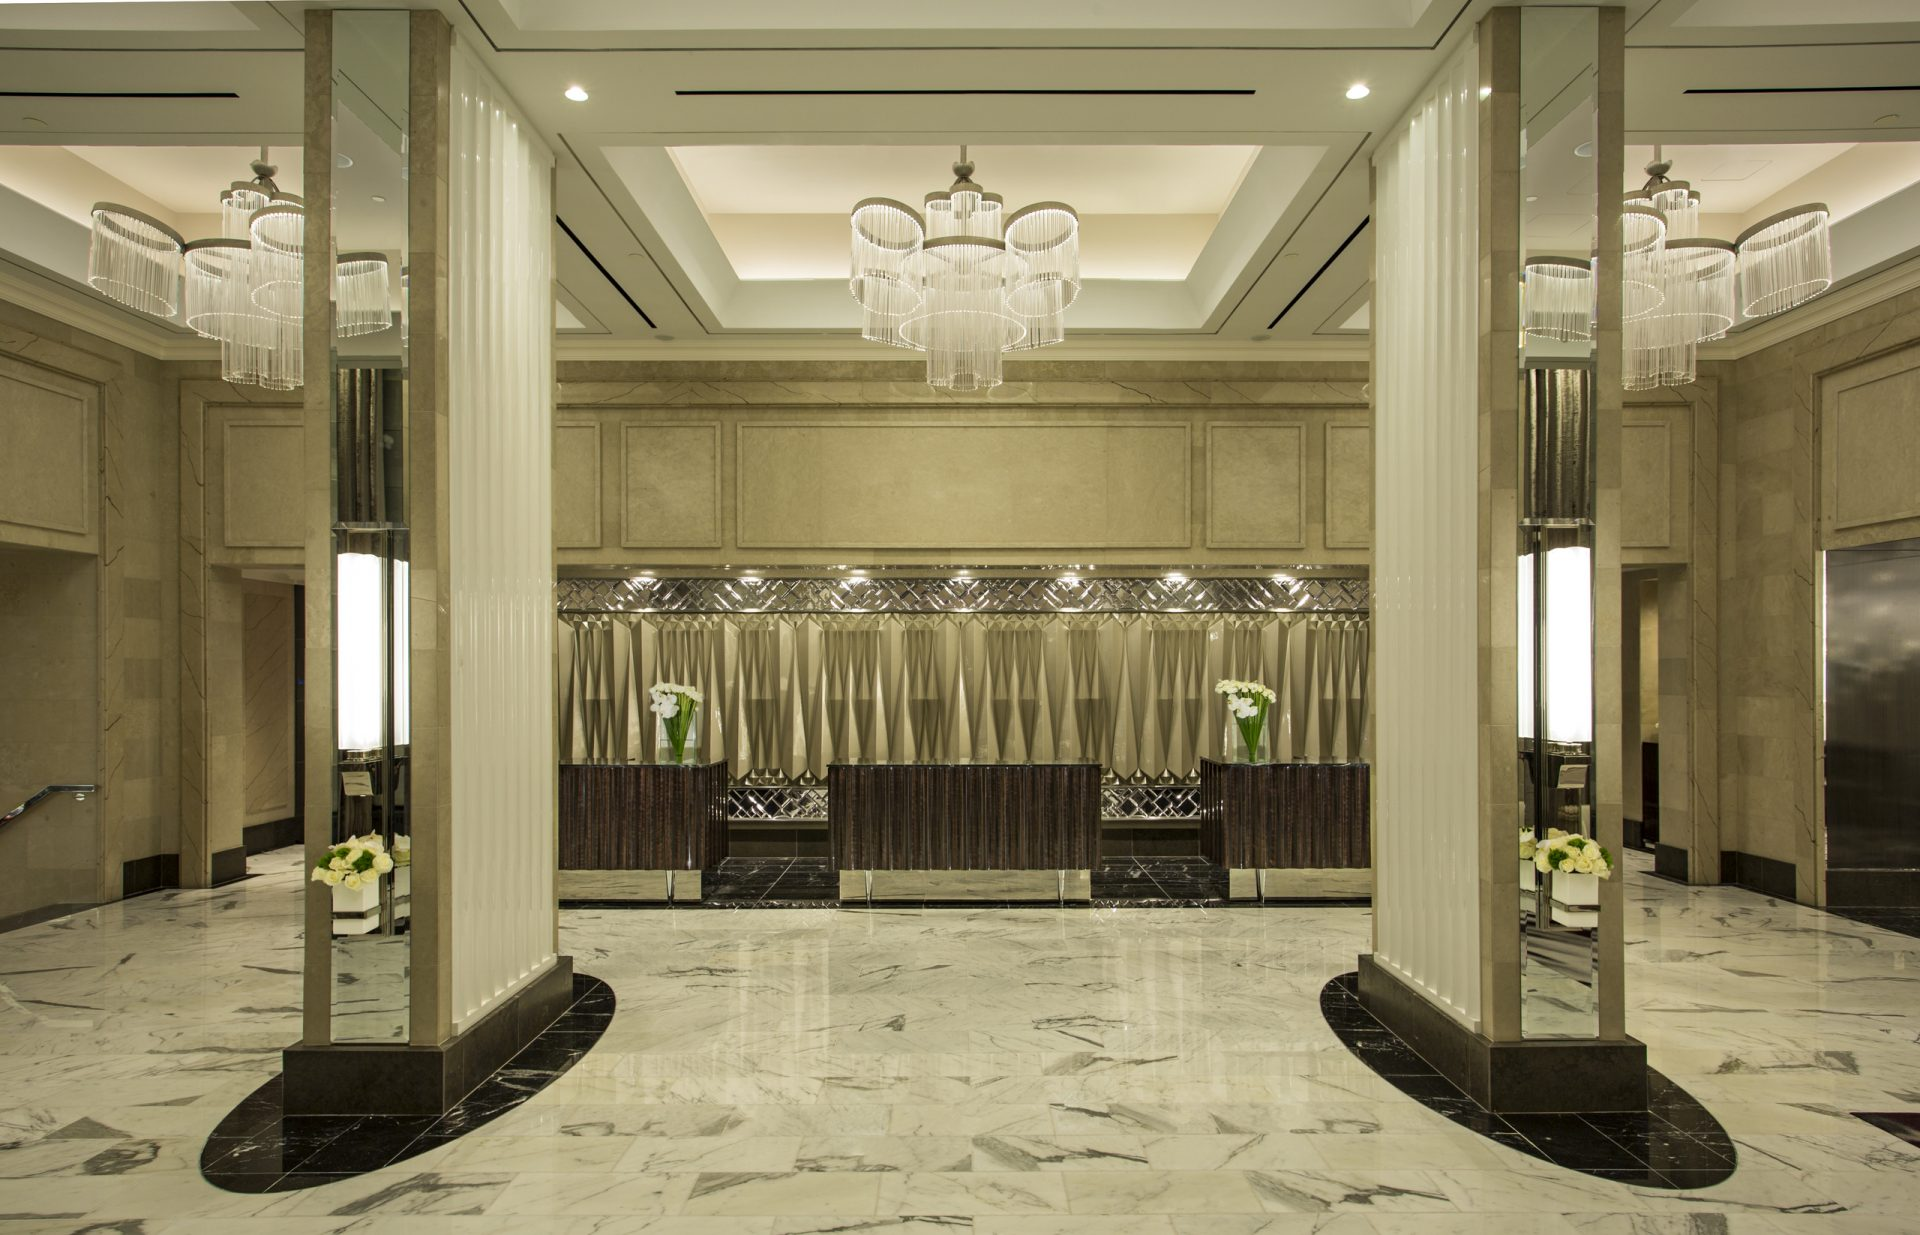 Lobby of the Loews Regency New York